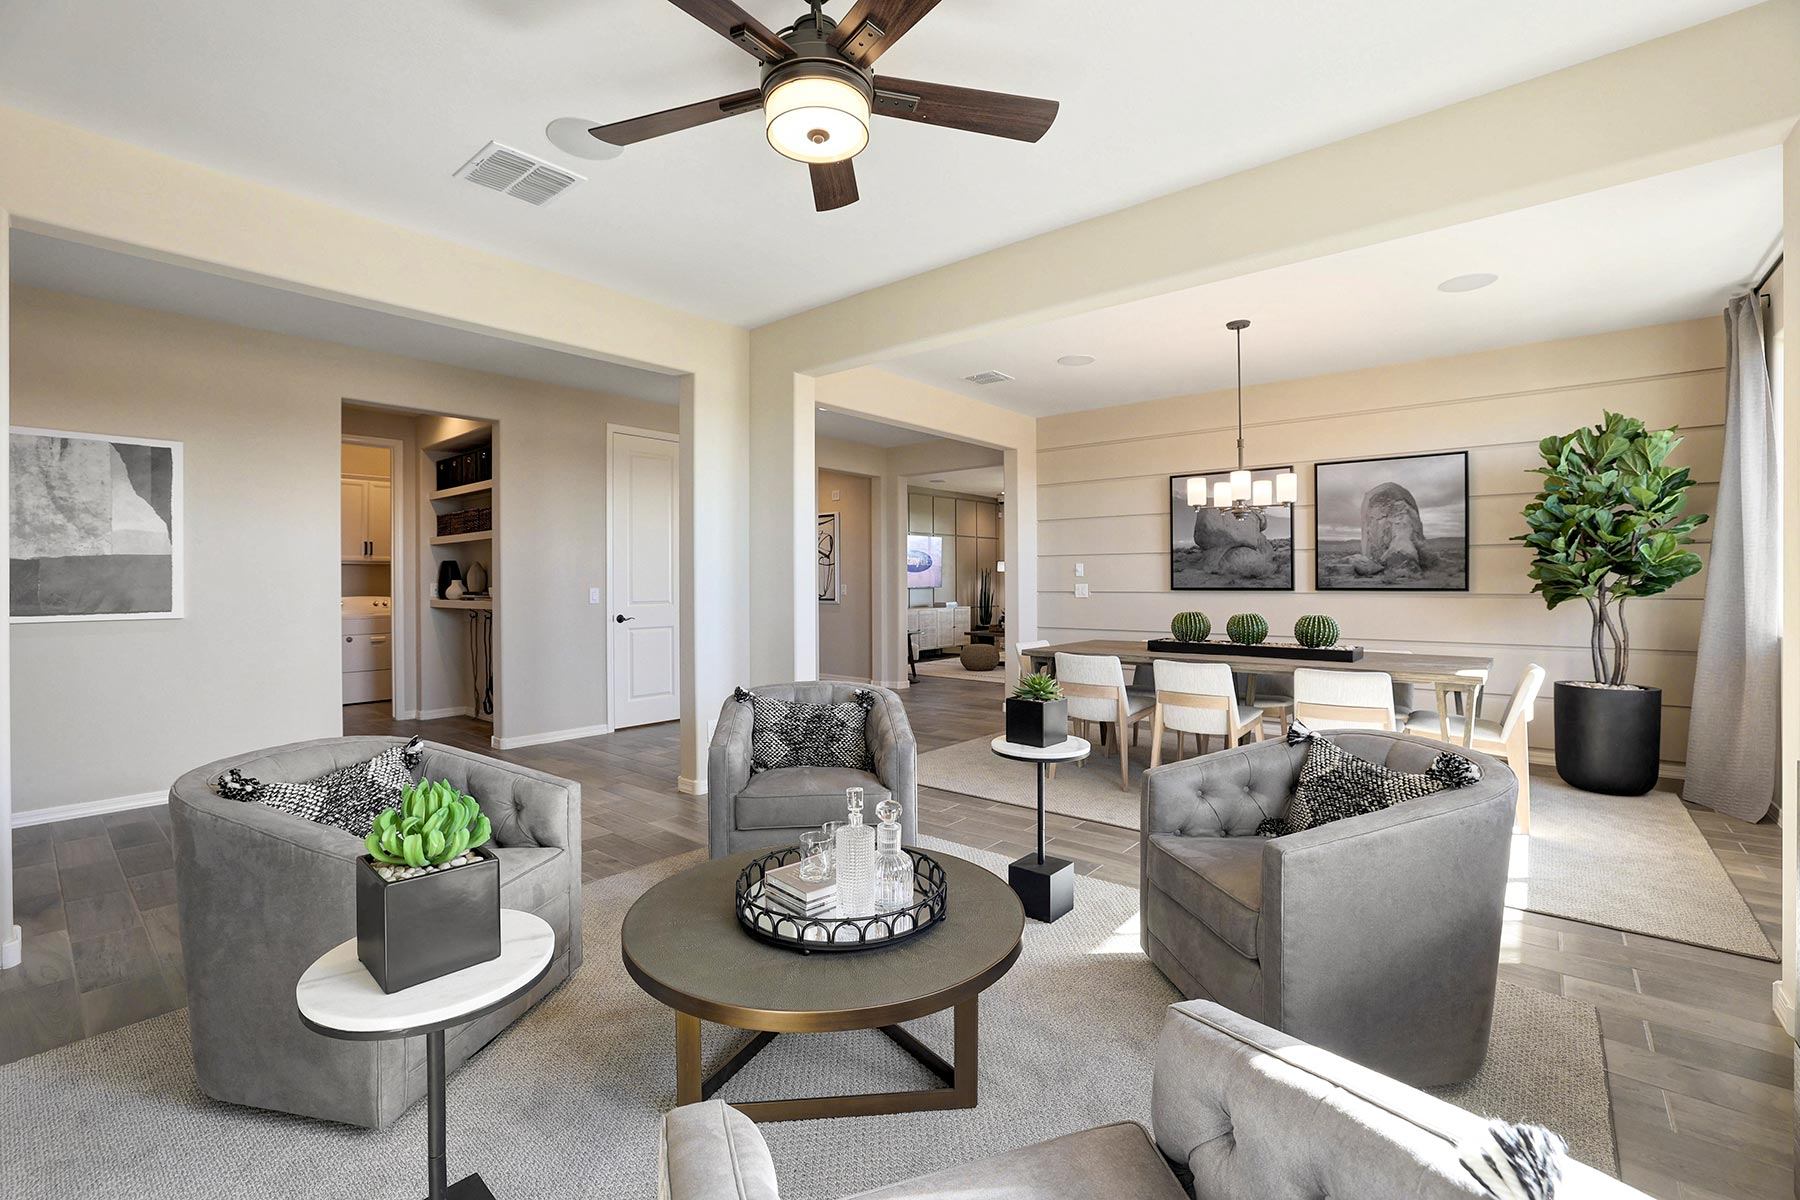 Bellwood Plan Others at Azure Canyon in Goodyear Arizona by Mattamy Homes